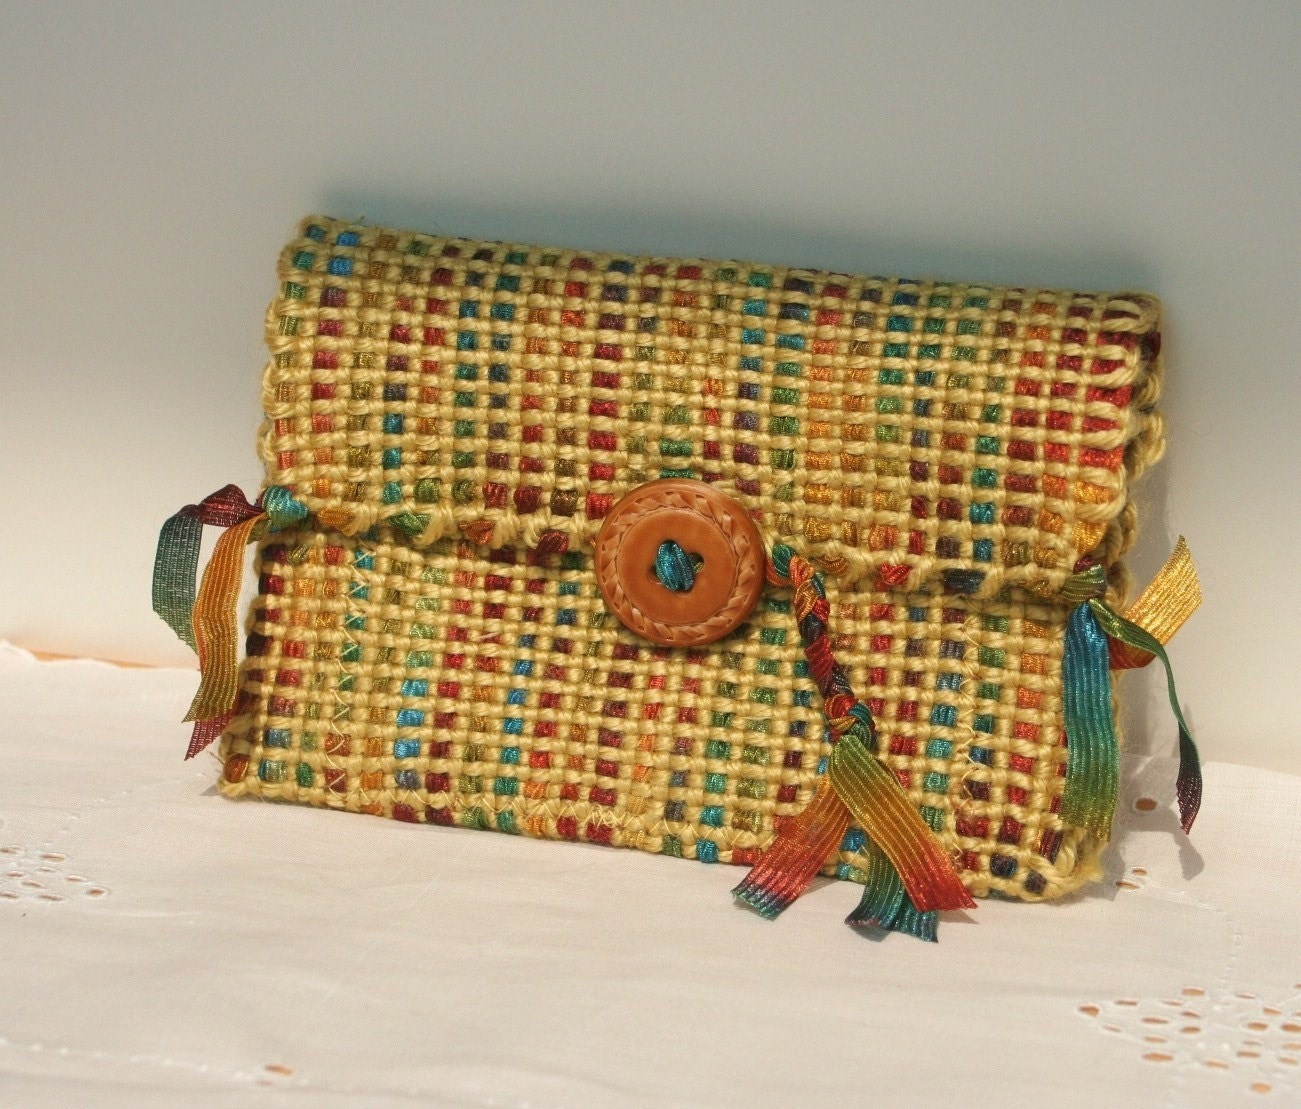 Tri Fold  WoVeN WalleT, hand made, one of a kind